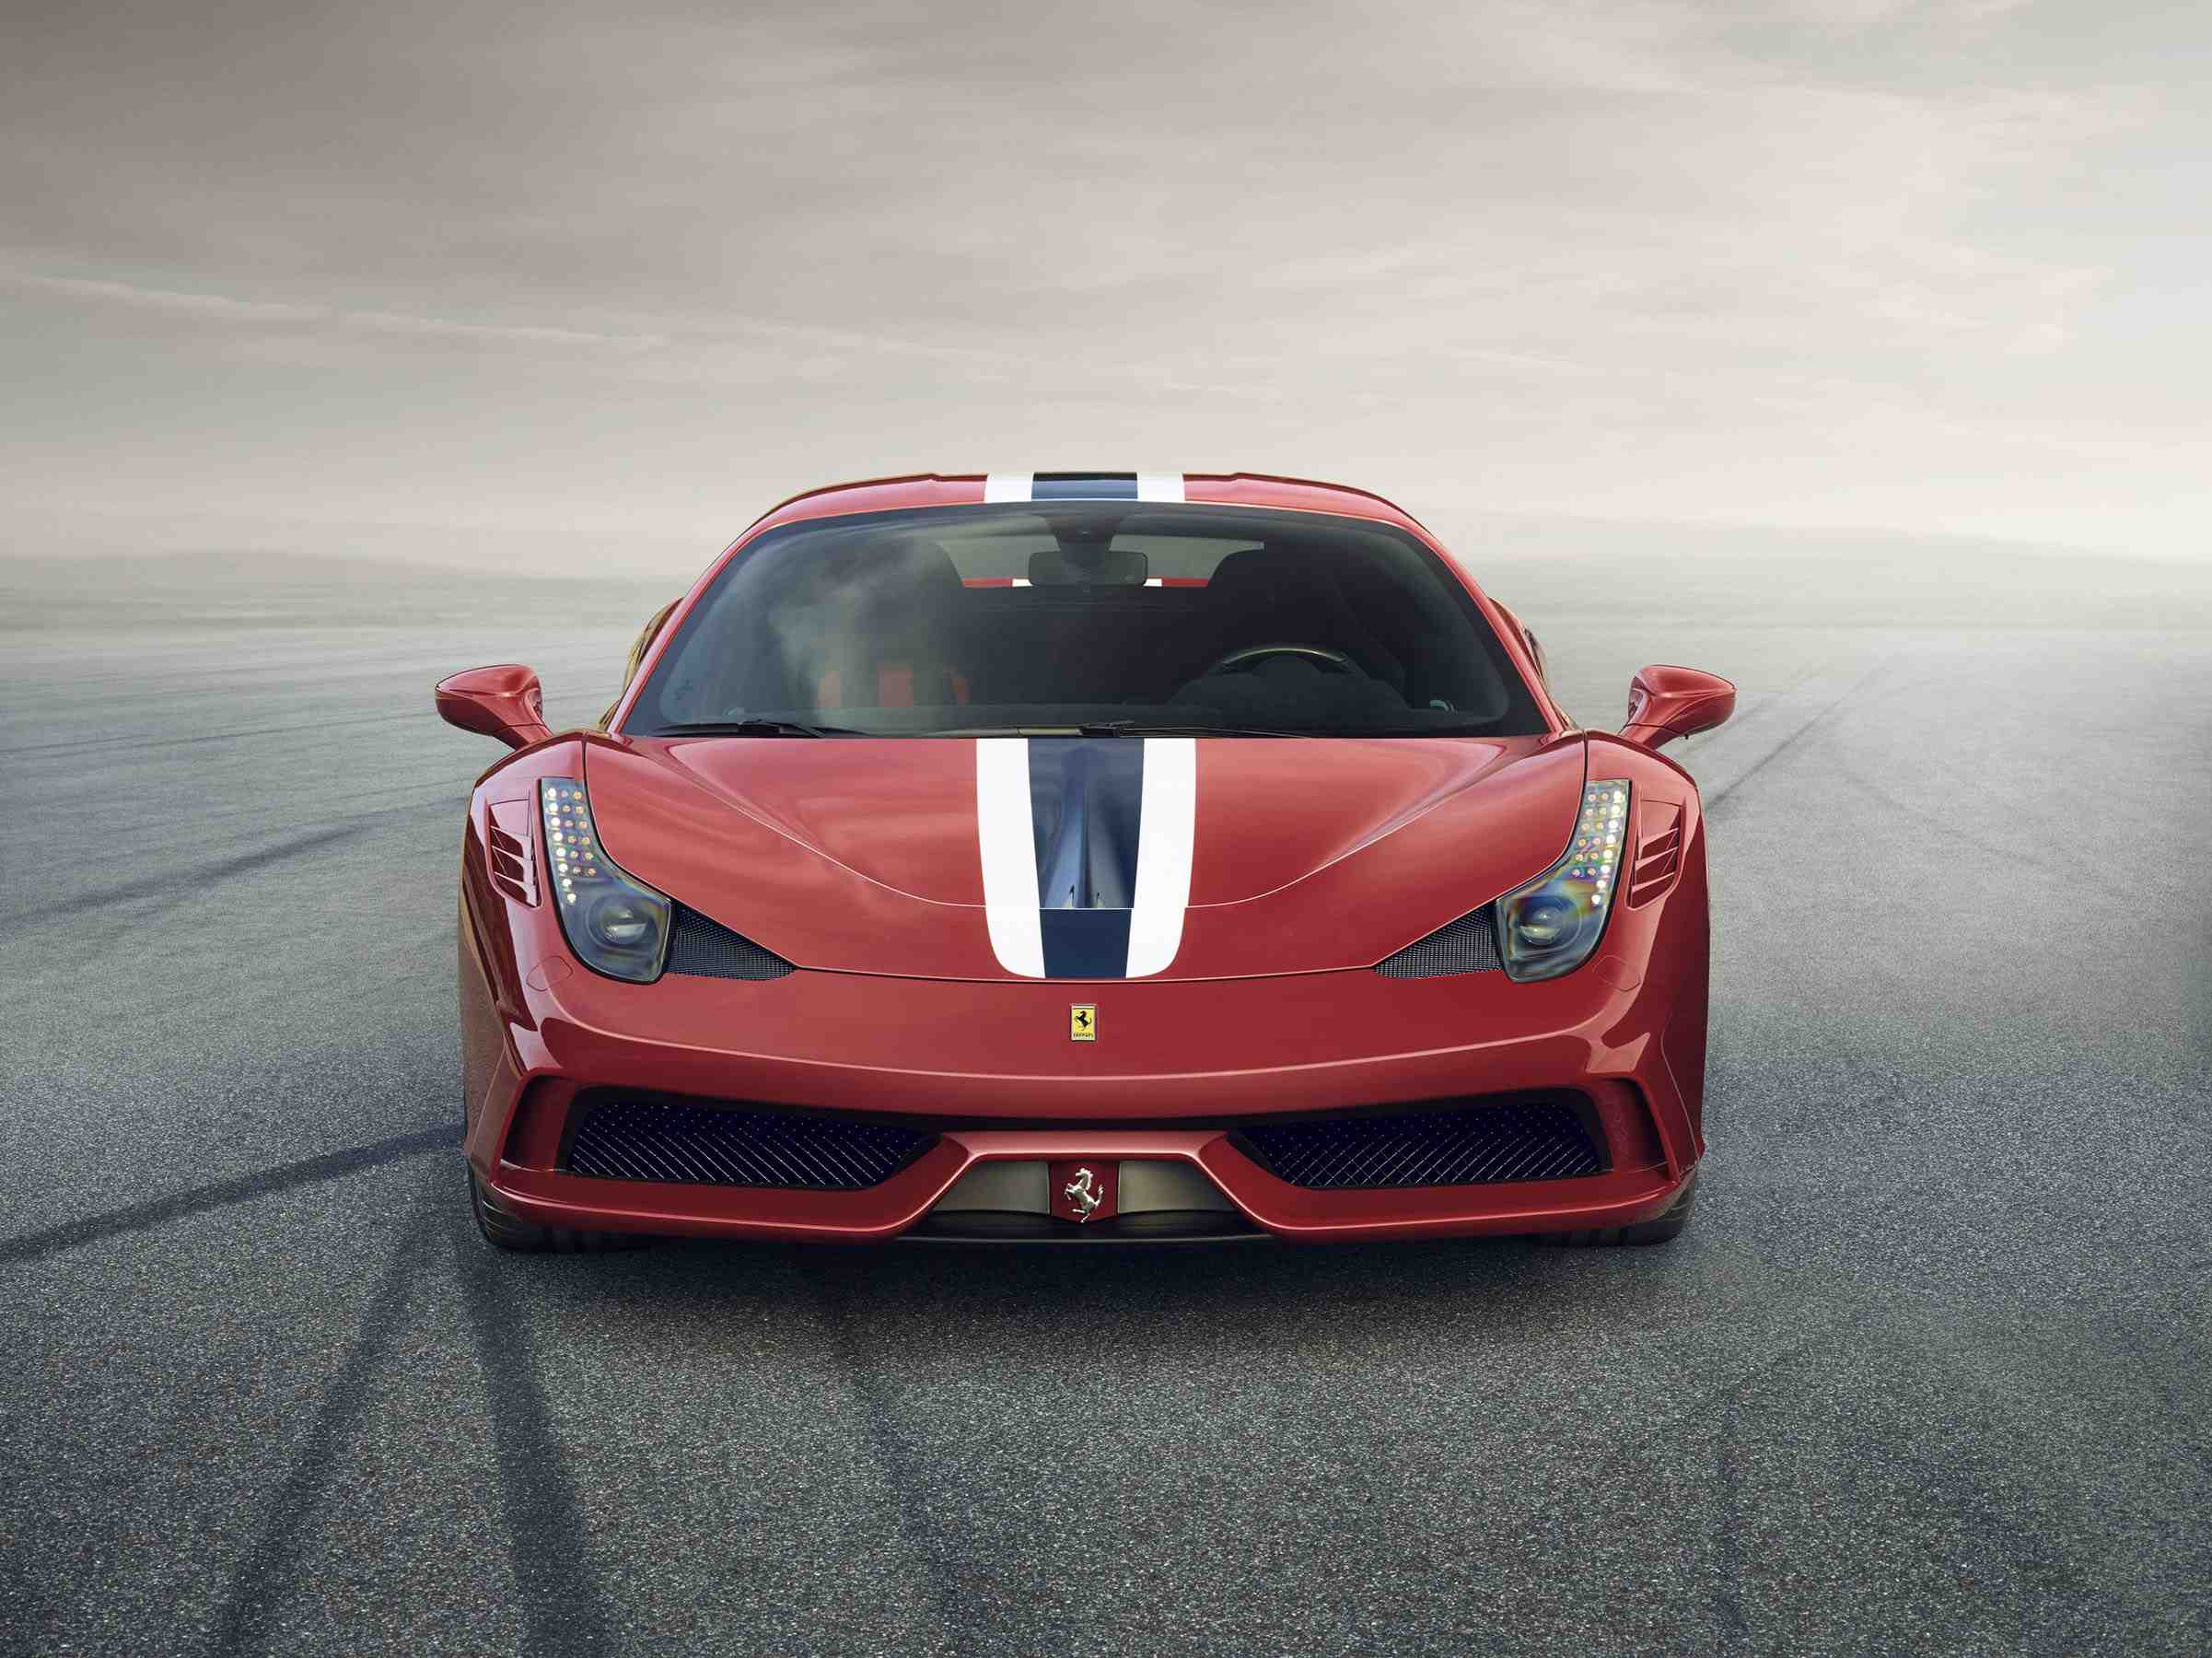 Feast Your Eyes On The Ferrari 458 Speciale